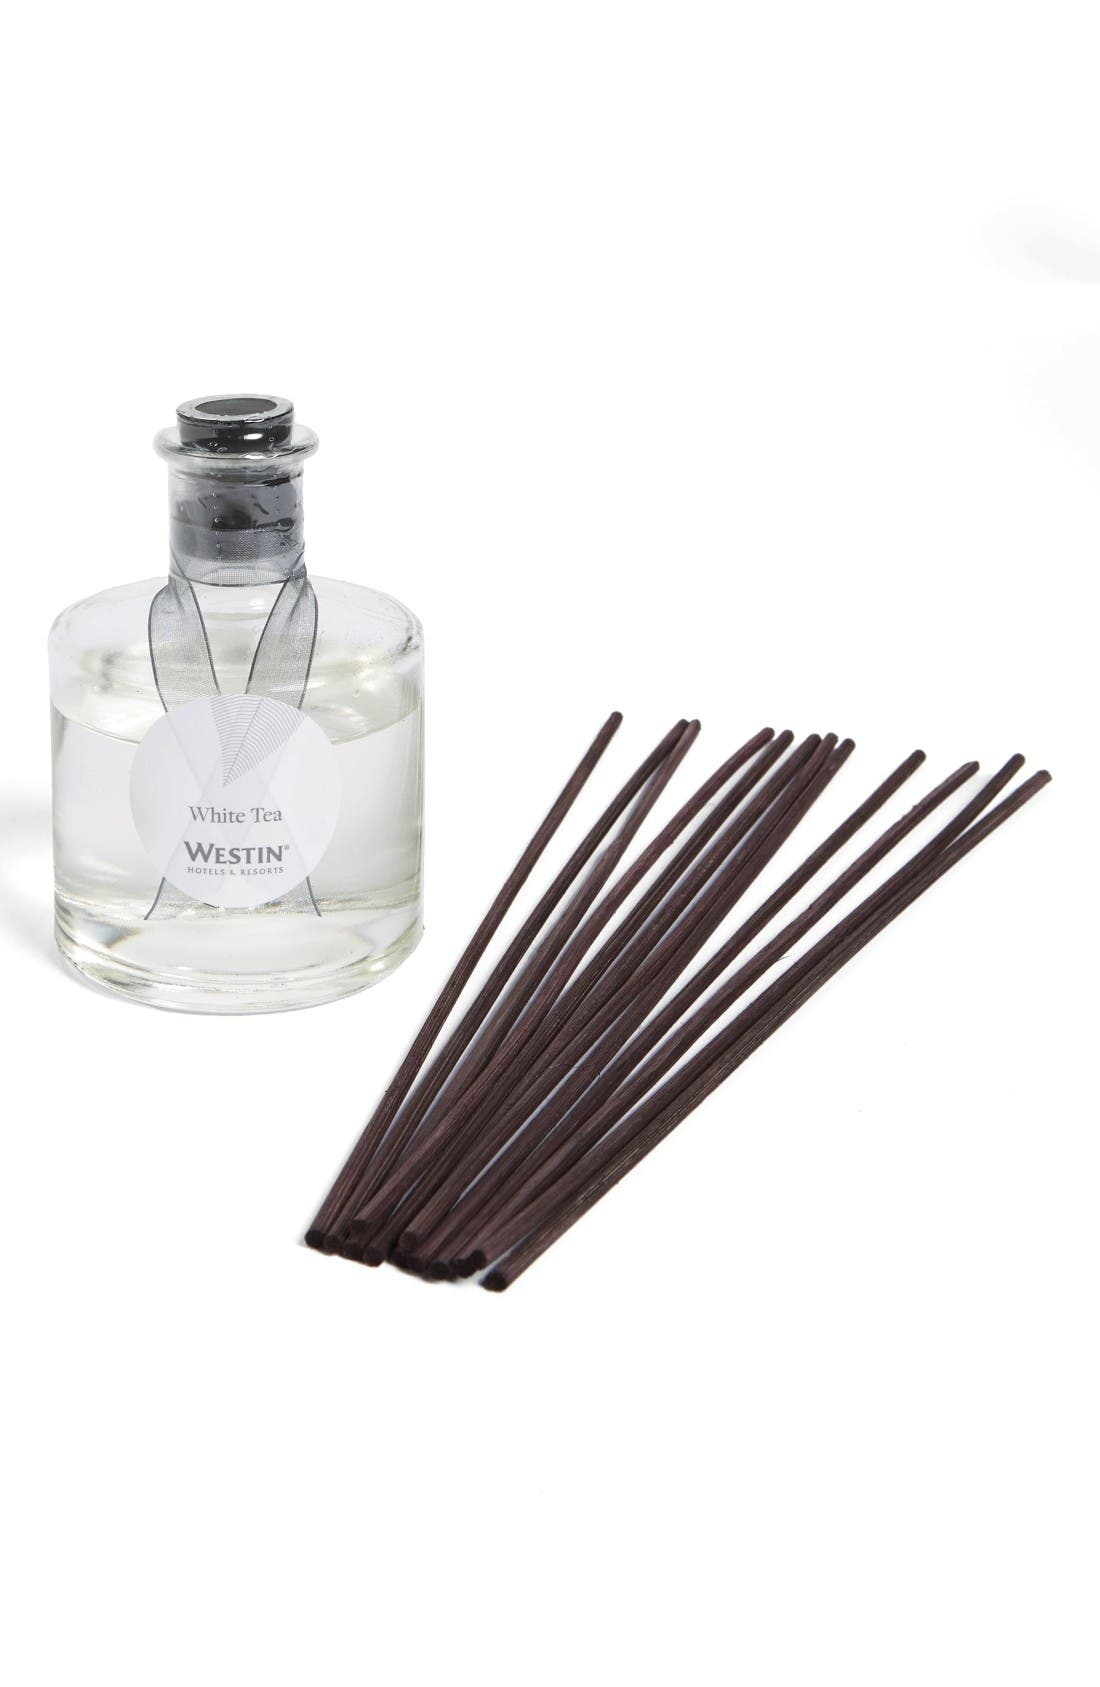 Main Image - Westin At Home Bed White Tea Diffuser